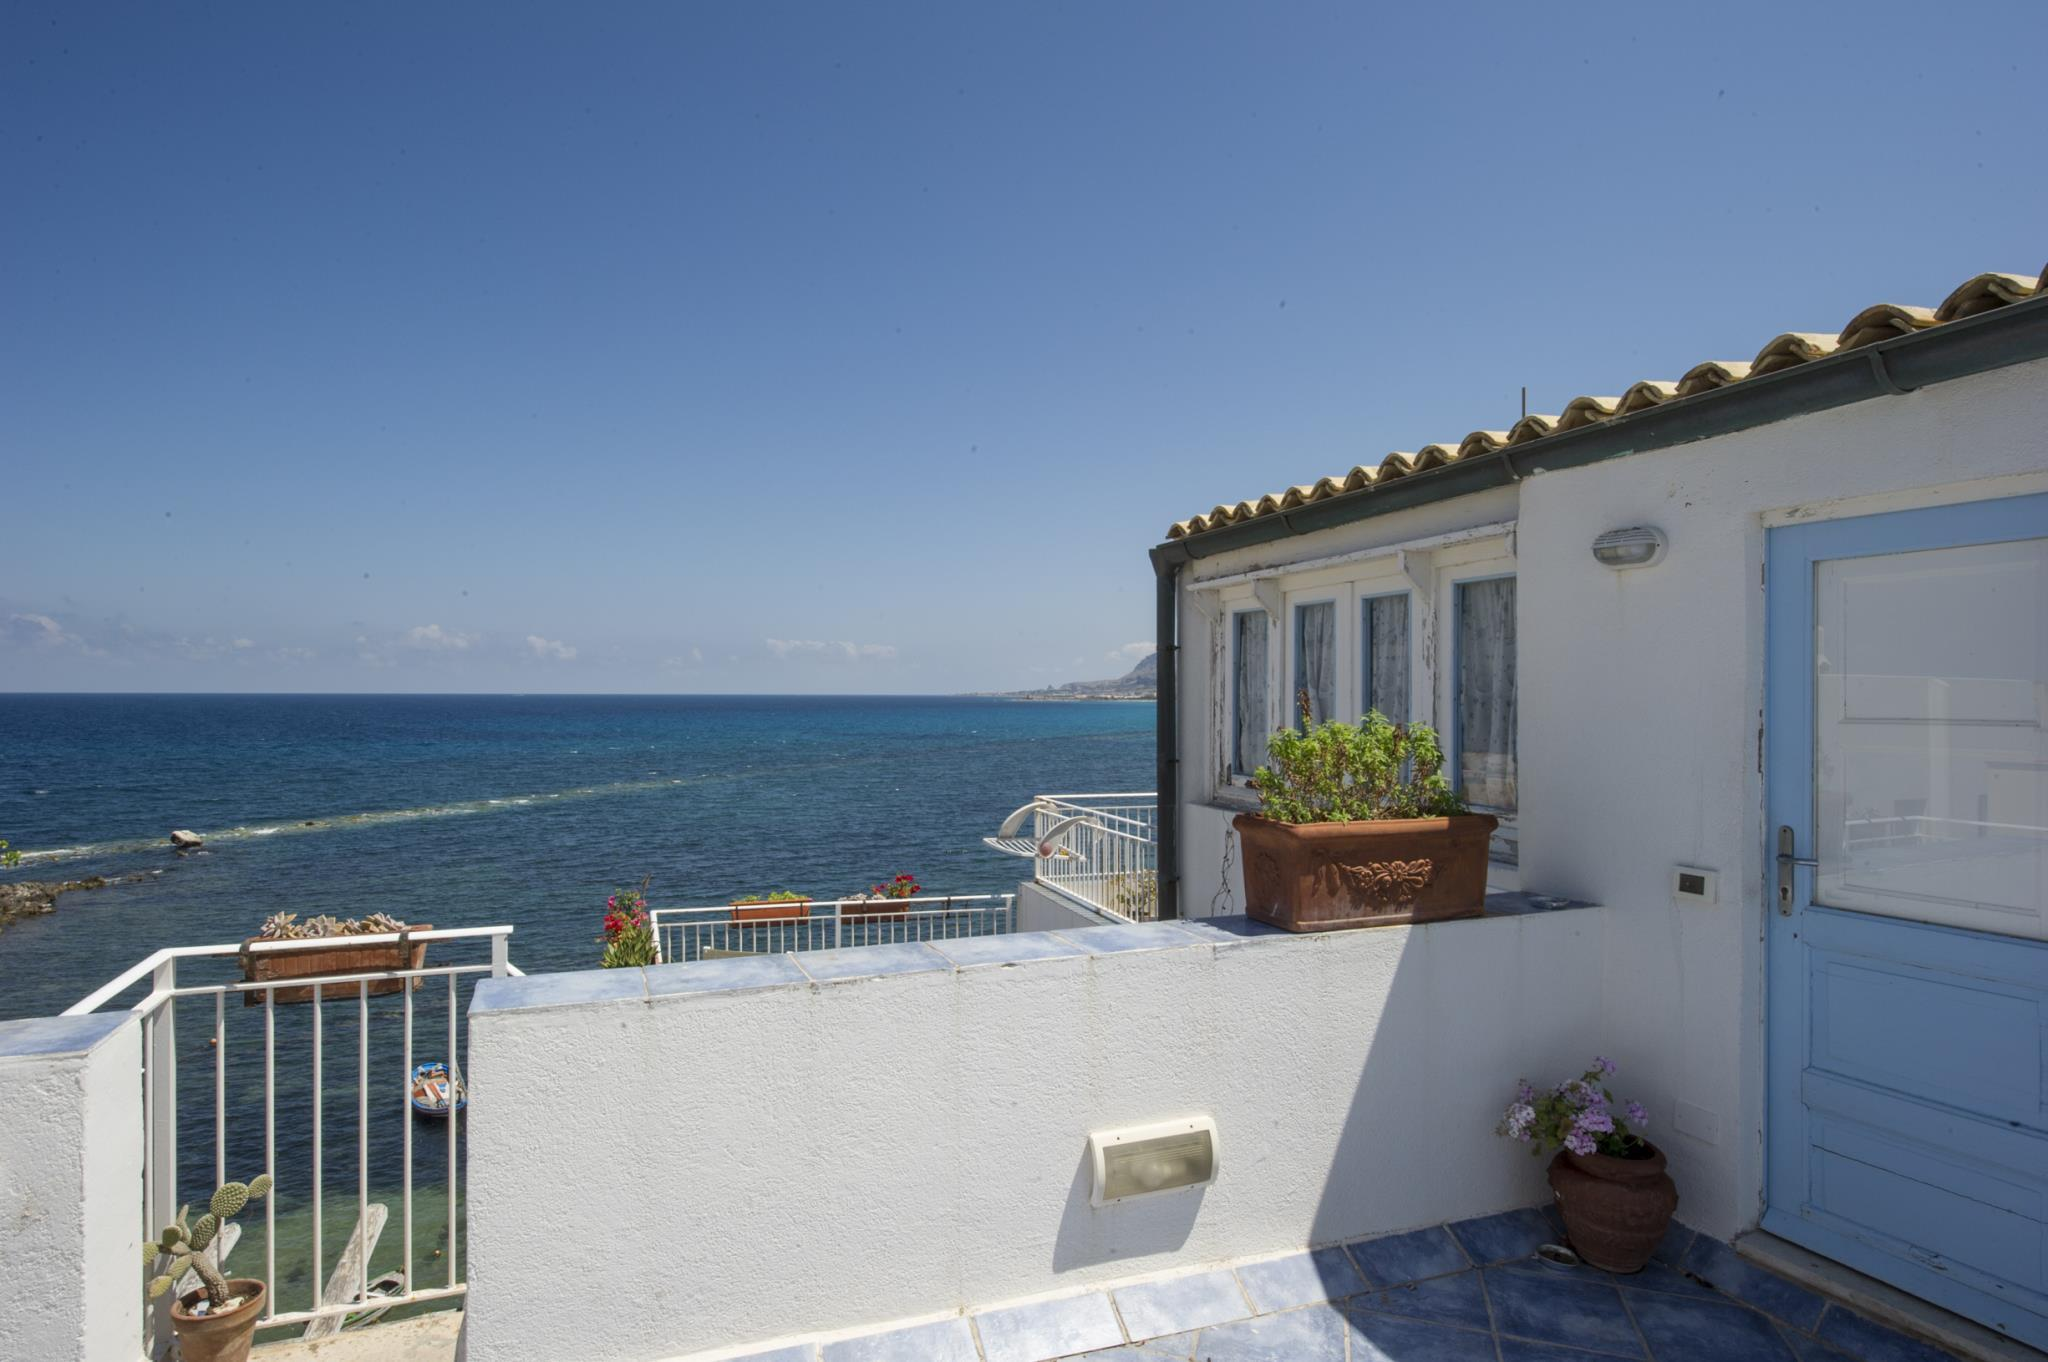 Residence Cielomare